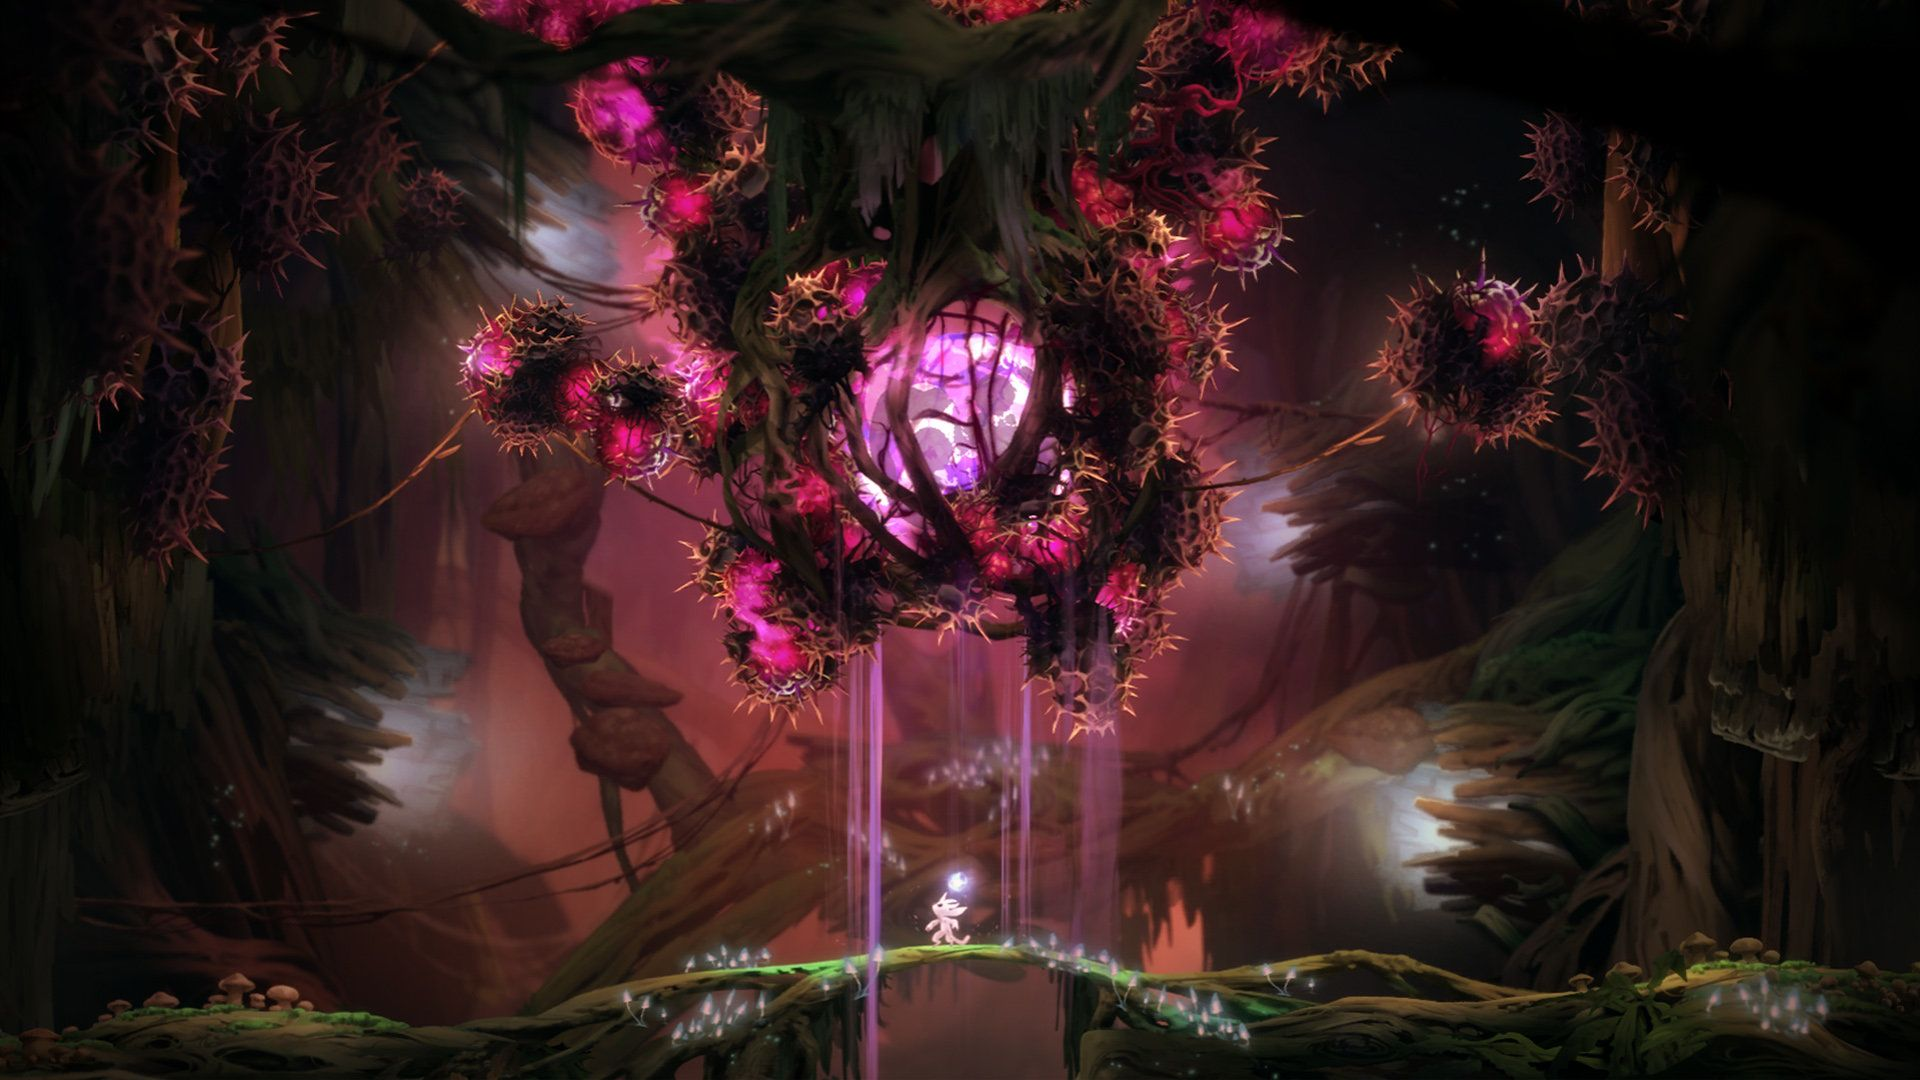 Ori And The Blind Forest Airborn Studios Environment Concept Art Concept Art Environment Design